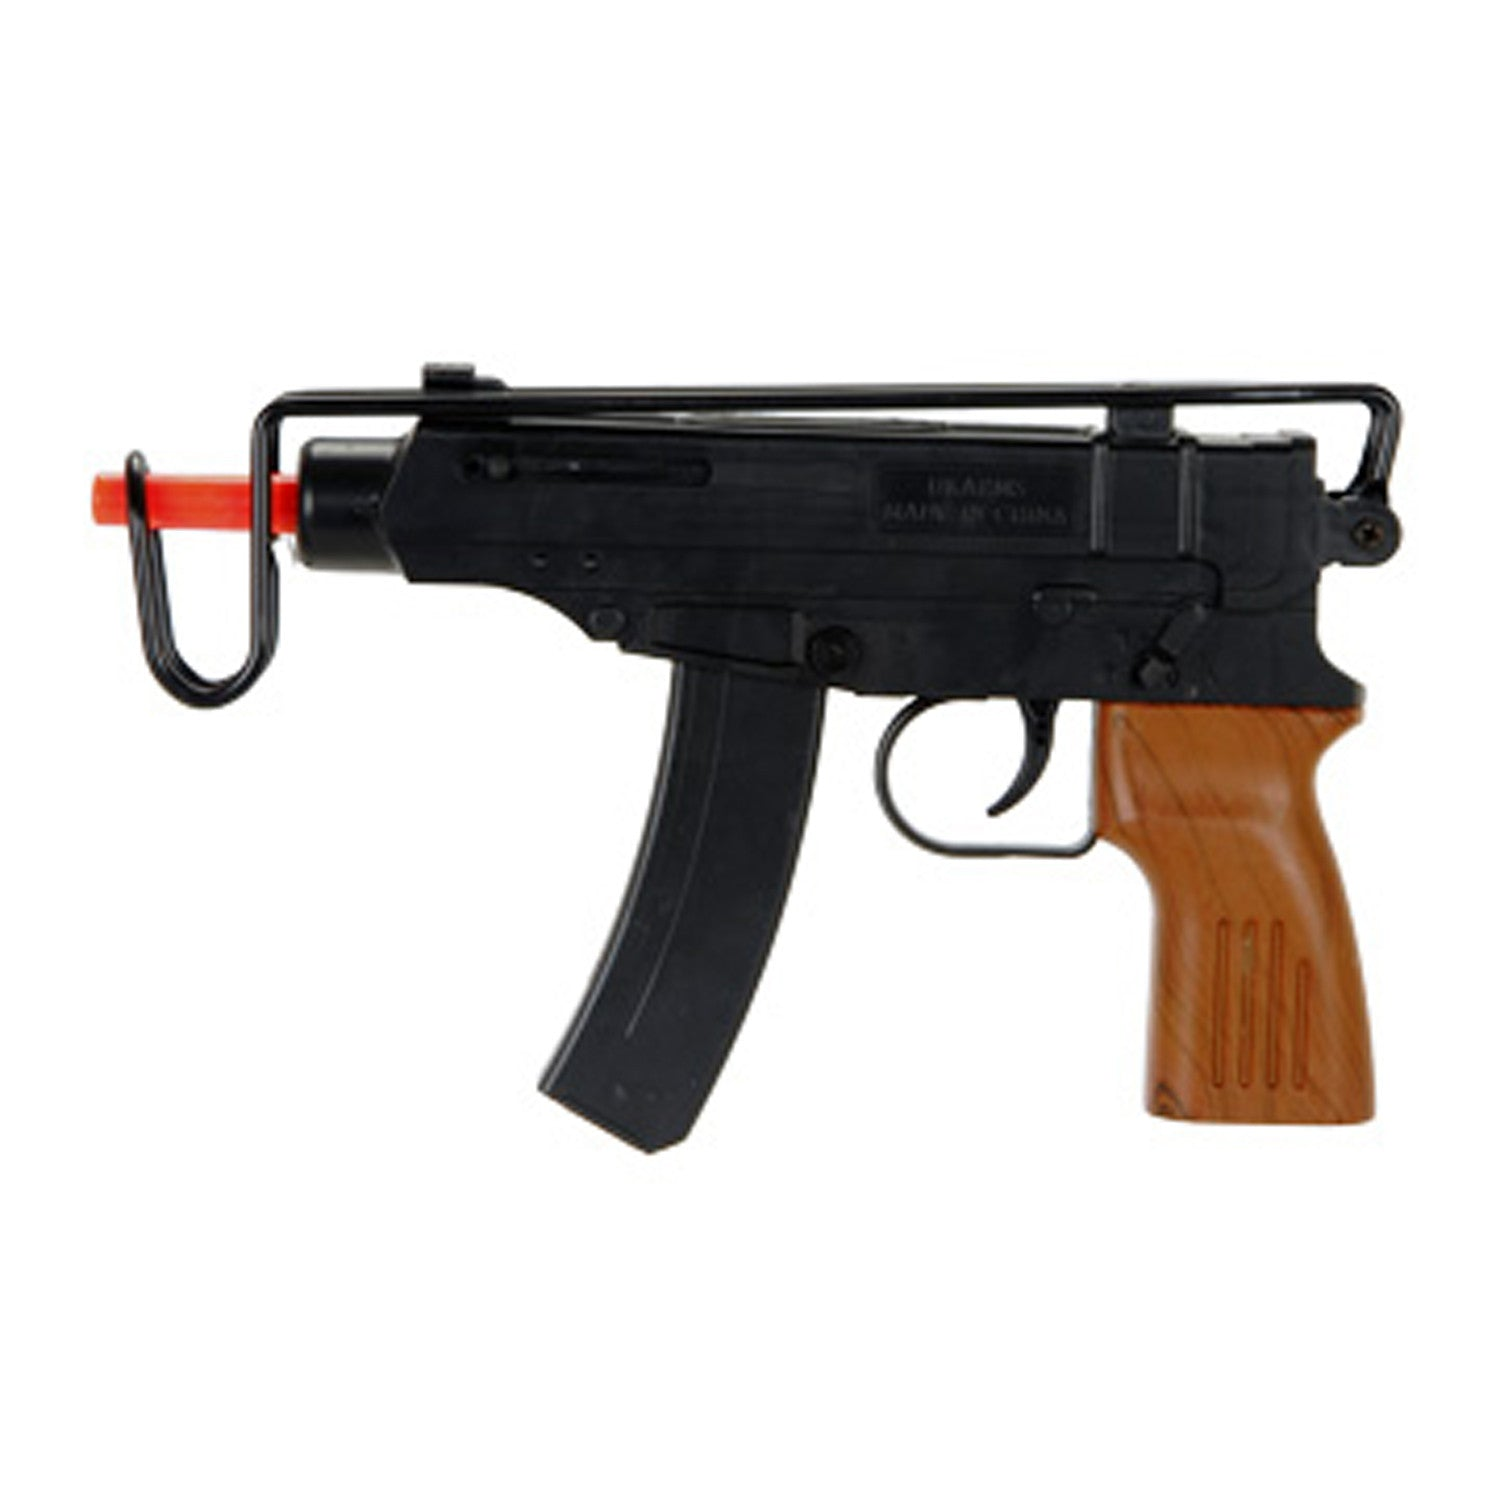 M309A Spring Airsoft Scorpion -       Plastic Construction     Folding Metal Stock     50rd Magazine